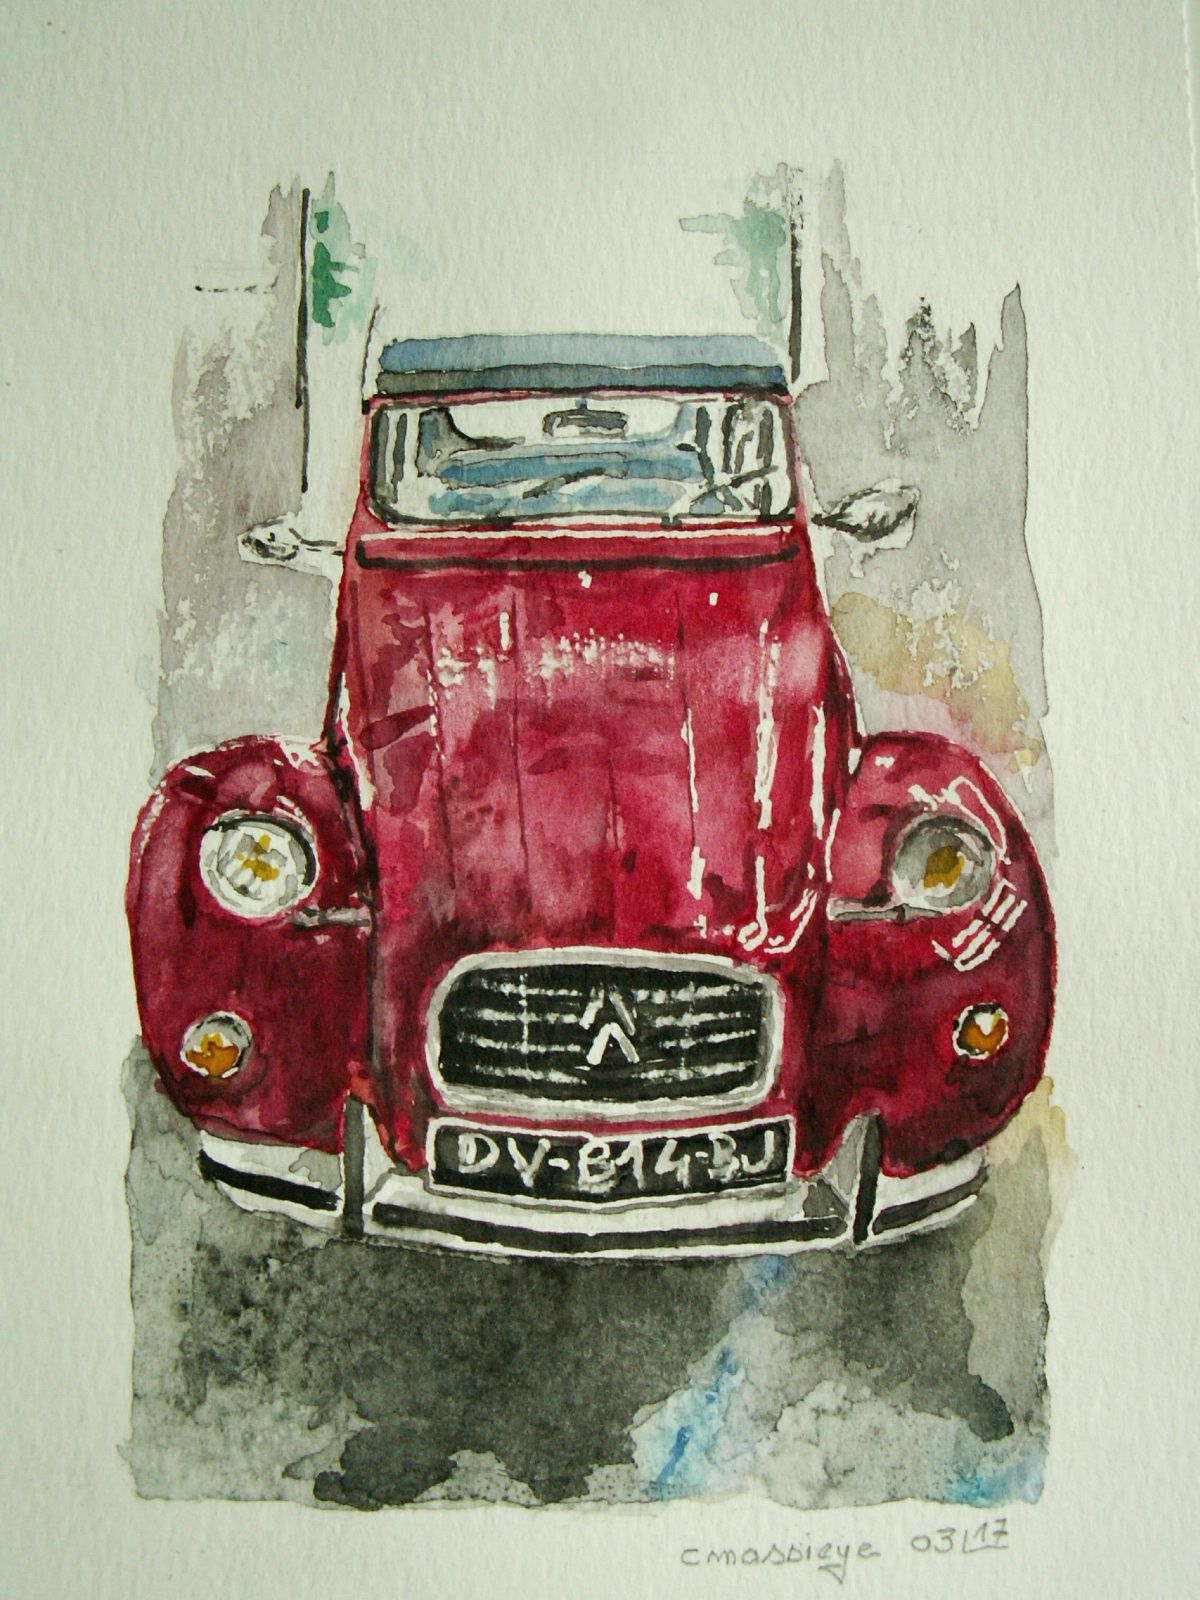 Pin by Dawna Banks on Watercolor | Pinterest | Watercolor, Paintings ...